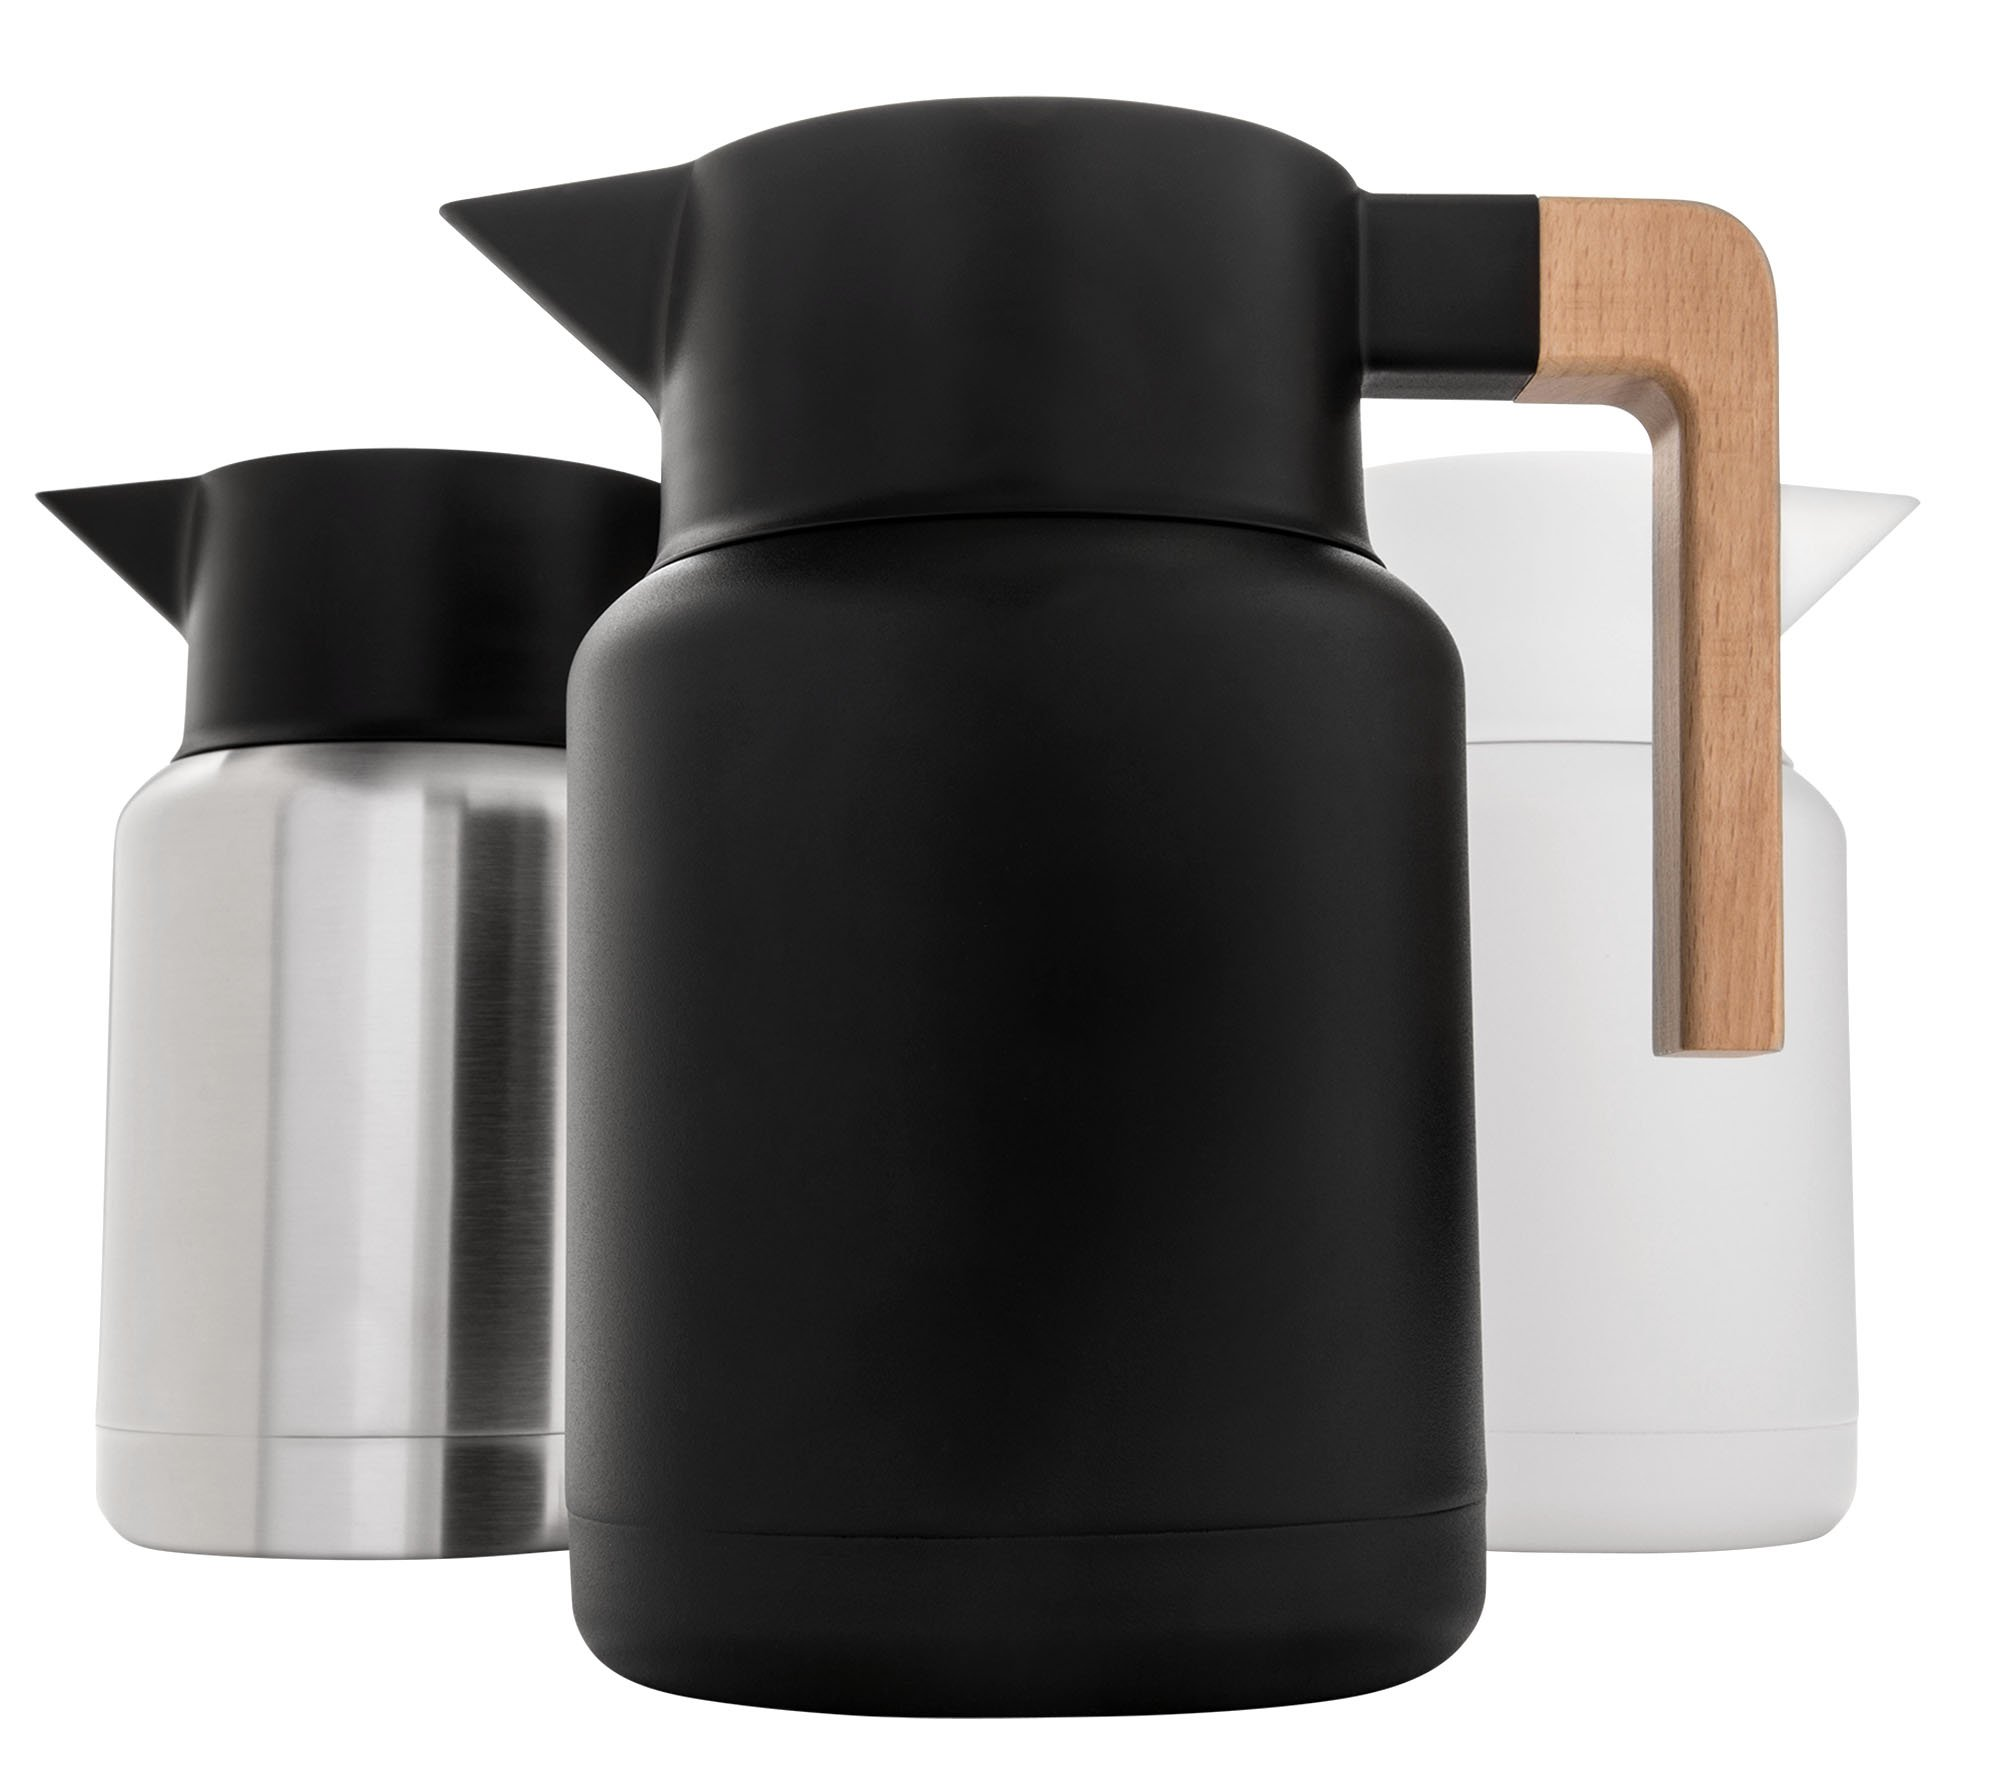 Large Thermal Coffee Carafe - Stainless Steel, Double Walled Thermal Pots For Coffee and Teas by Hastings Collective - Black, Vacuum Carafes With Removable Tea Infuser and Strainer | 50 Fl Oz. by Hastings Collective